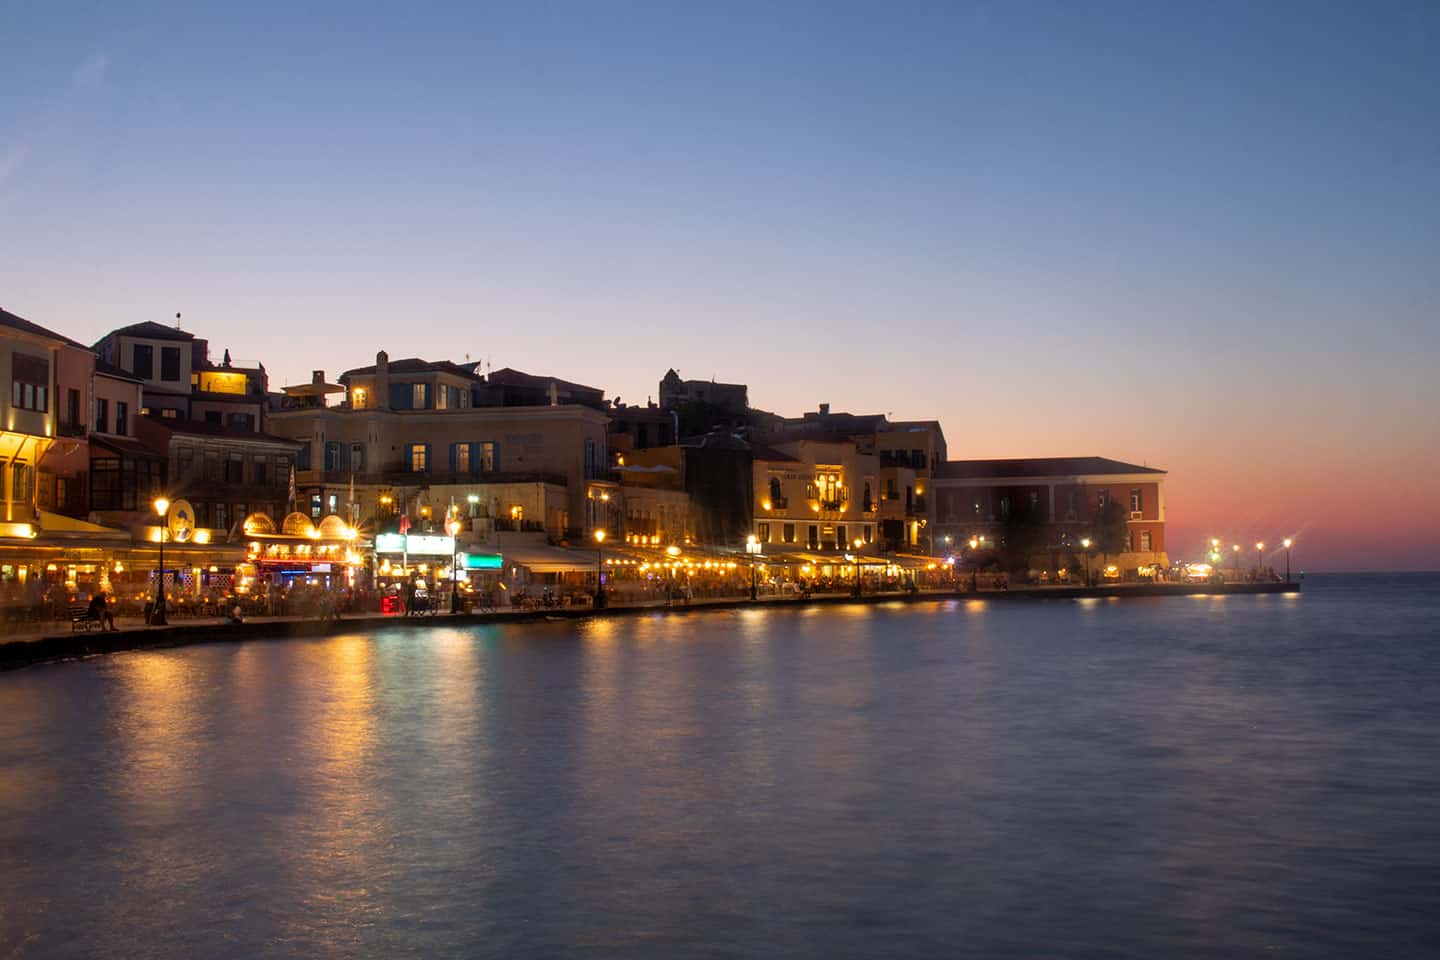 Image of restaurants on Chania harbour at dusk